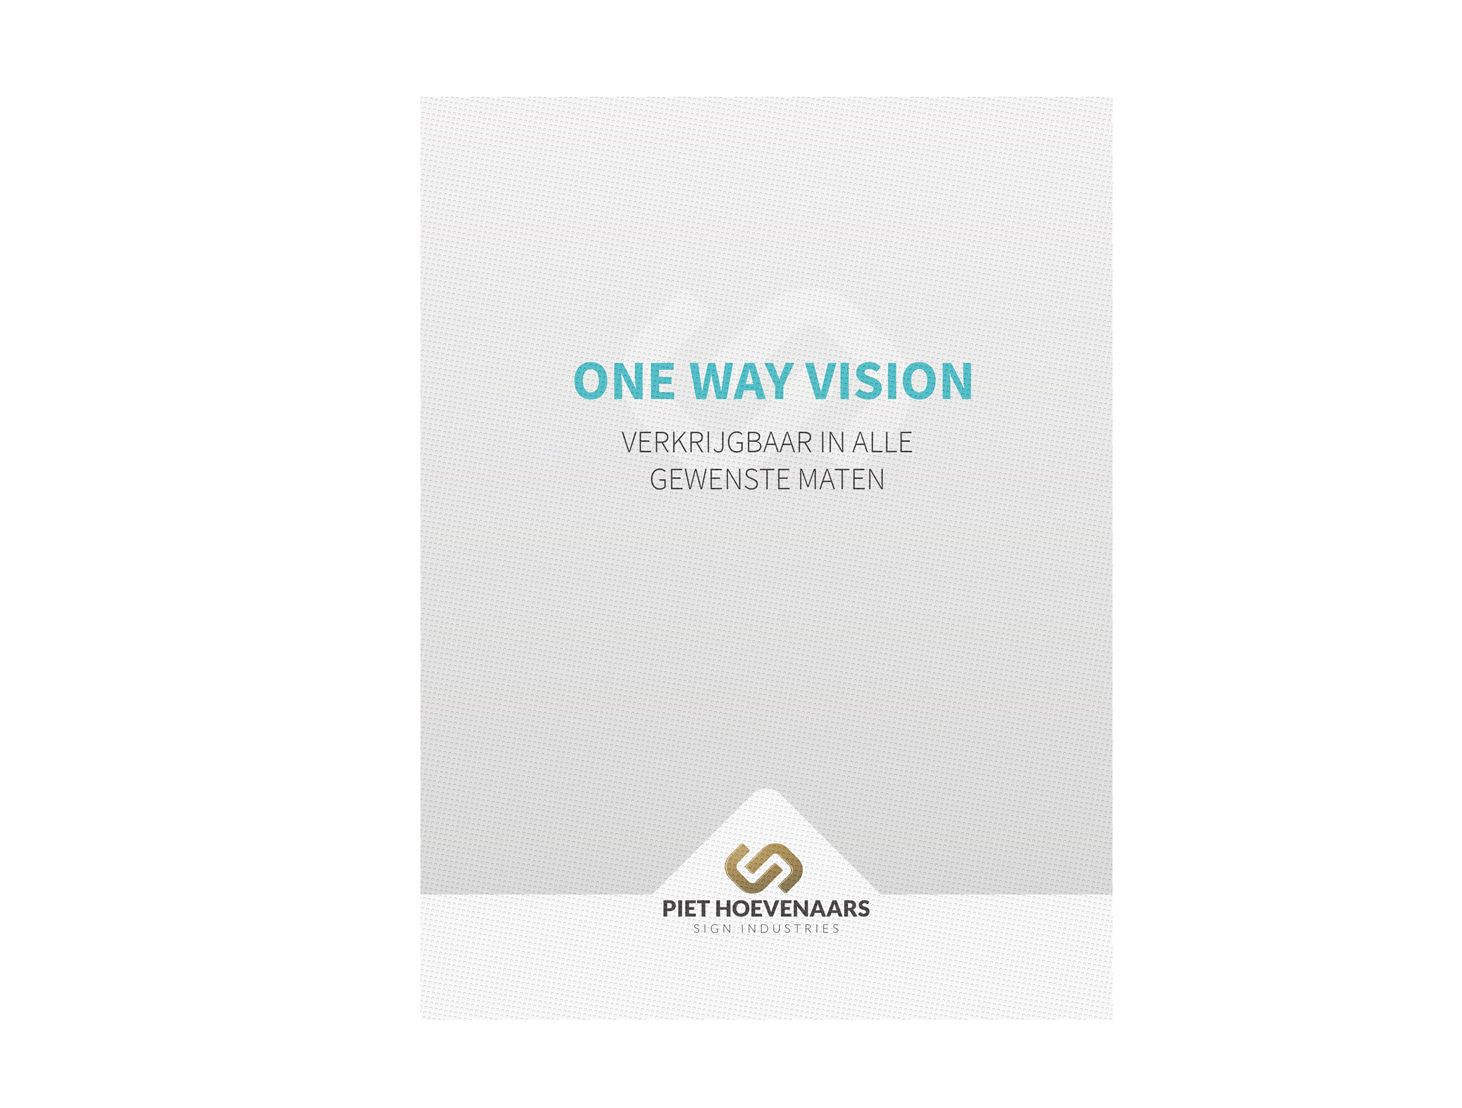 One Way Vision-Binnenzijde raam-One Way Vision dubbelzijdig Triple fc + wit + fc